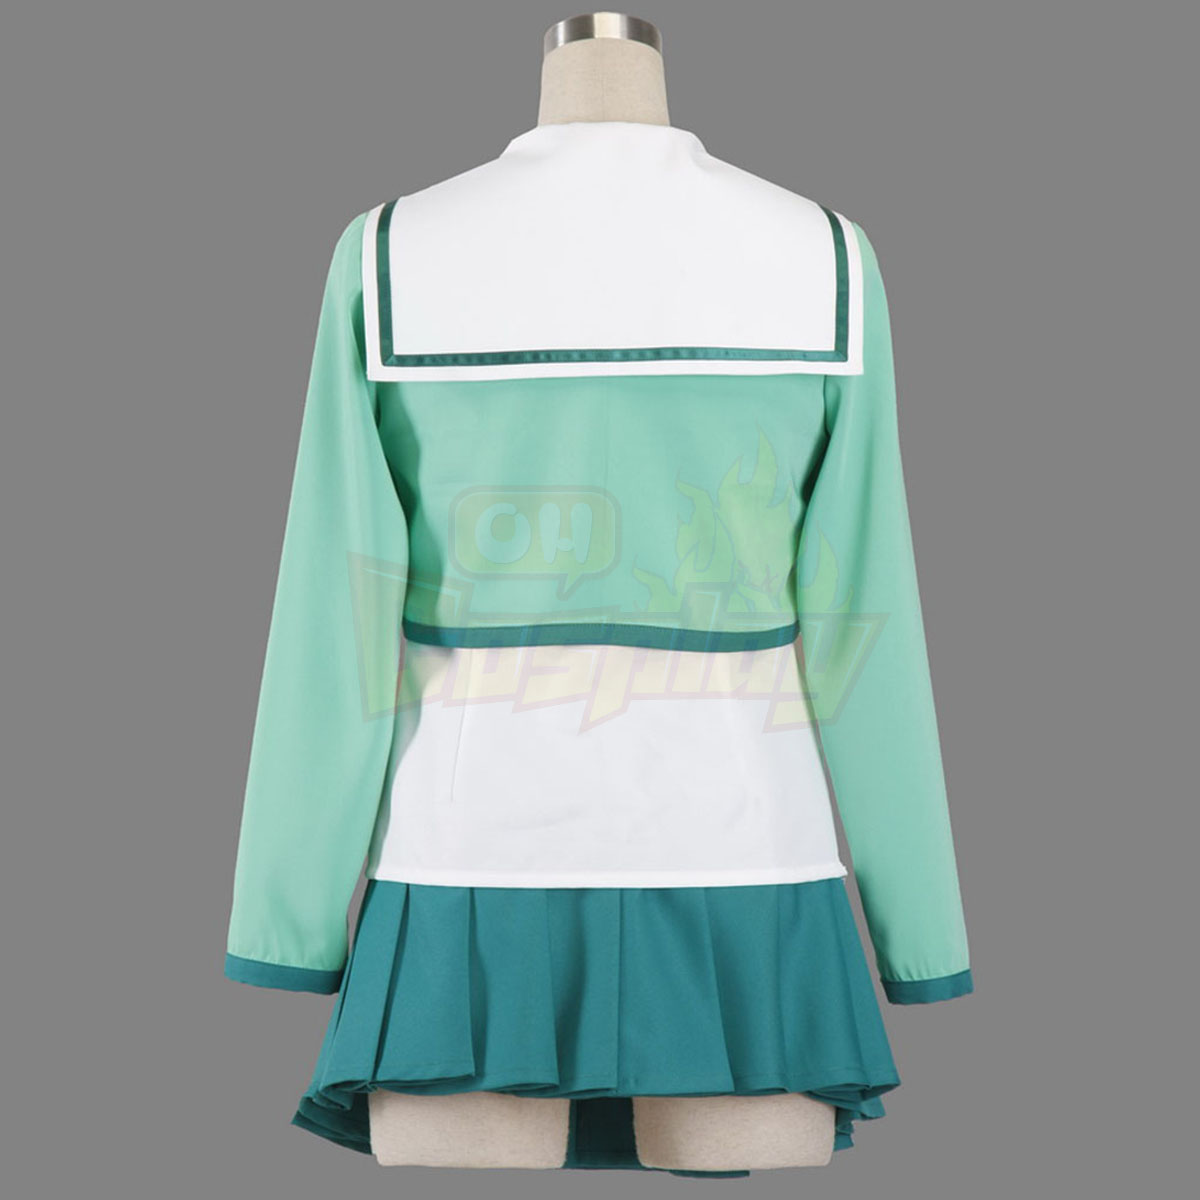 Fantasias The Prince of Tennis Youth Academy Inverno Fardas da Escola Trajes Cosplay